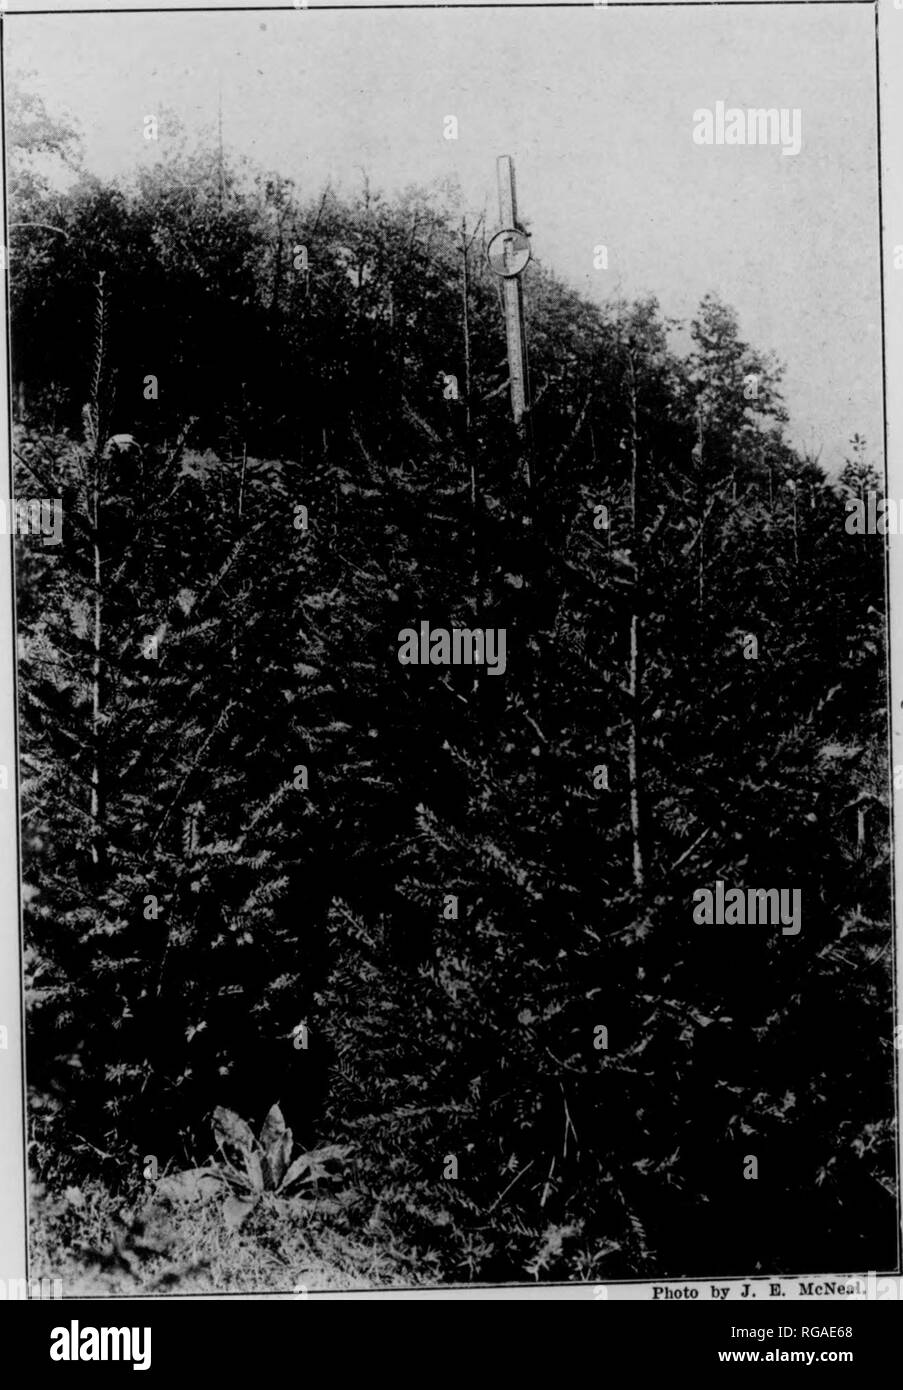 ". Bulletin (Pennsylvania Department of Forestry), no. 14-16. Forests and forestry. â â < \'- ^:M r.^,^' -^â¦.'., r 'â¢F-r^ 1.^ p.-/ I'"" \^'v- m^- y-V' ""'6 /,/ A '-"" V I'hoto by J. E. McNeal. Fig. 28. PLANTATION OF BULL PINE. Trees eight years old. Average height 5.7 feet. Jacob Nolde Estate, Berks County, Pennsylvania.. Photo by J. B. McNeal. Fig 29 PLANTATION OF DOUGLAS FIR. Trees nine years old.' Average height 3.7 feet. Jacob Nolde Estate, Berks County, Pennsylvania.. Please note that these images are extracted from scanned page images that may have been digitally enhanced Stock Photo"